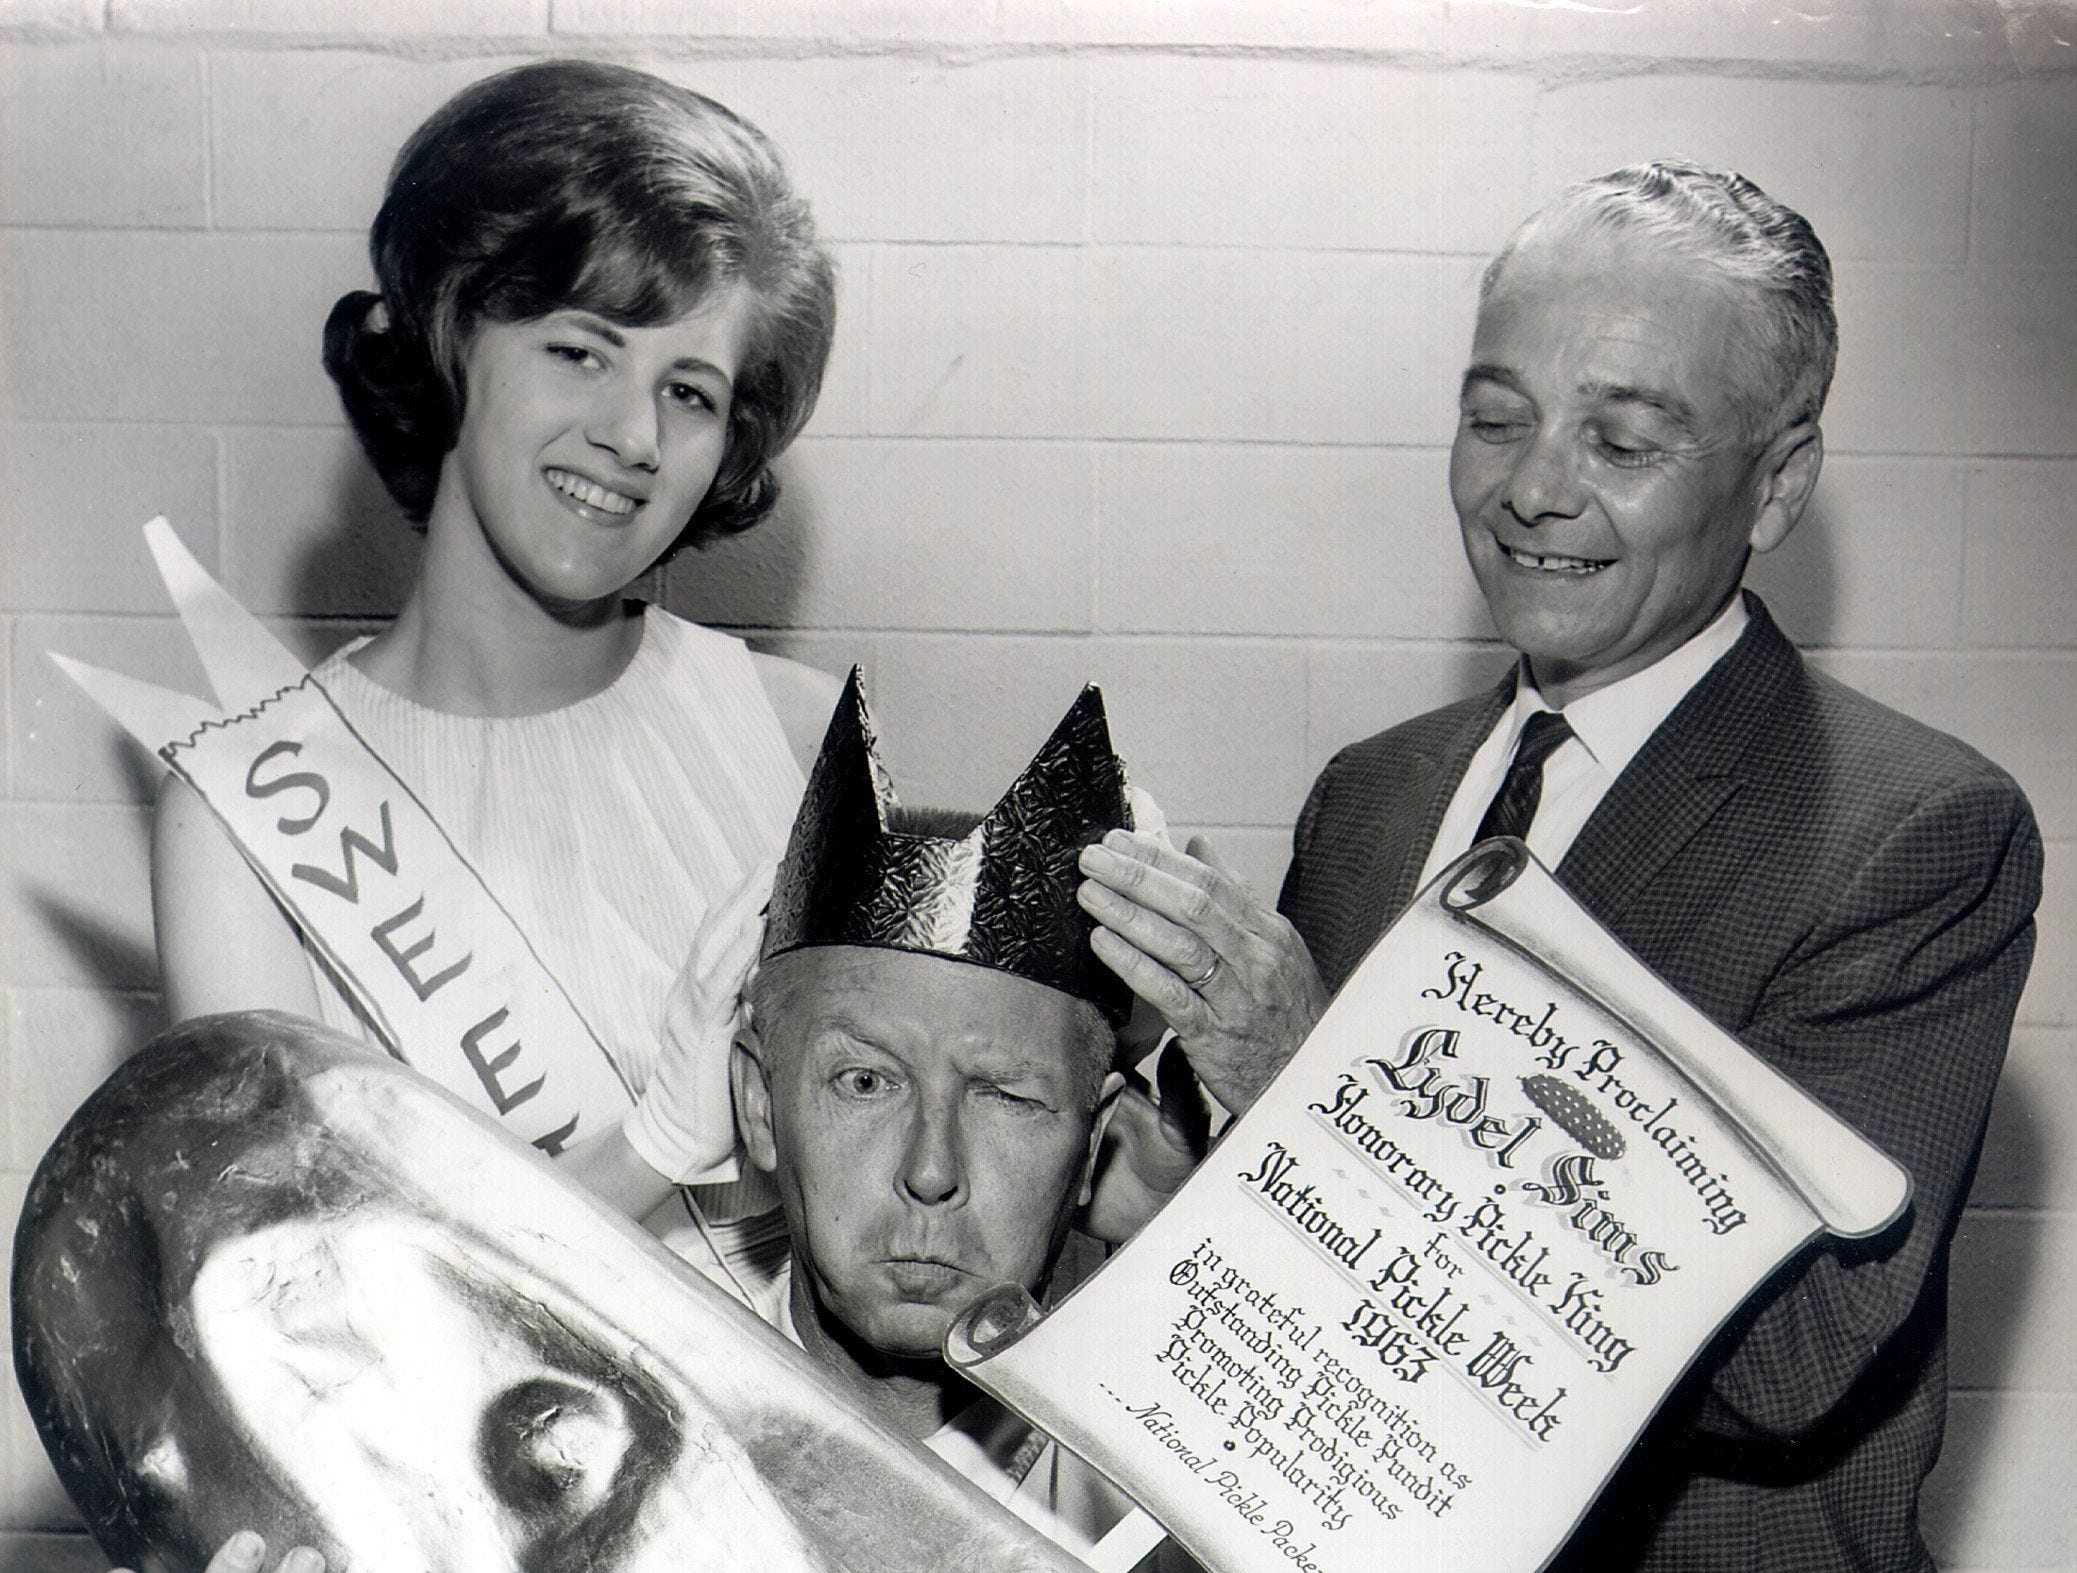 Thc Commercial Appeal Columnist Lydel Sims, center, is named Honorary Pickle King for National Pickle Week in 1963 by Berny Messinger, right. Benita Blackman  looks on during the April 1963 coronation.